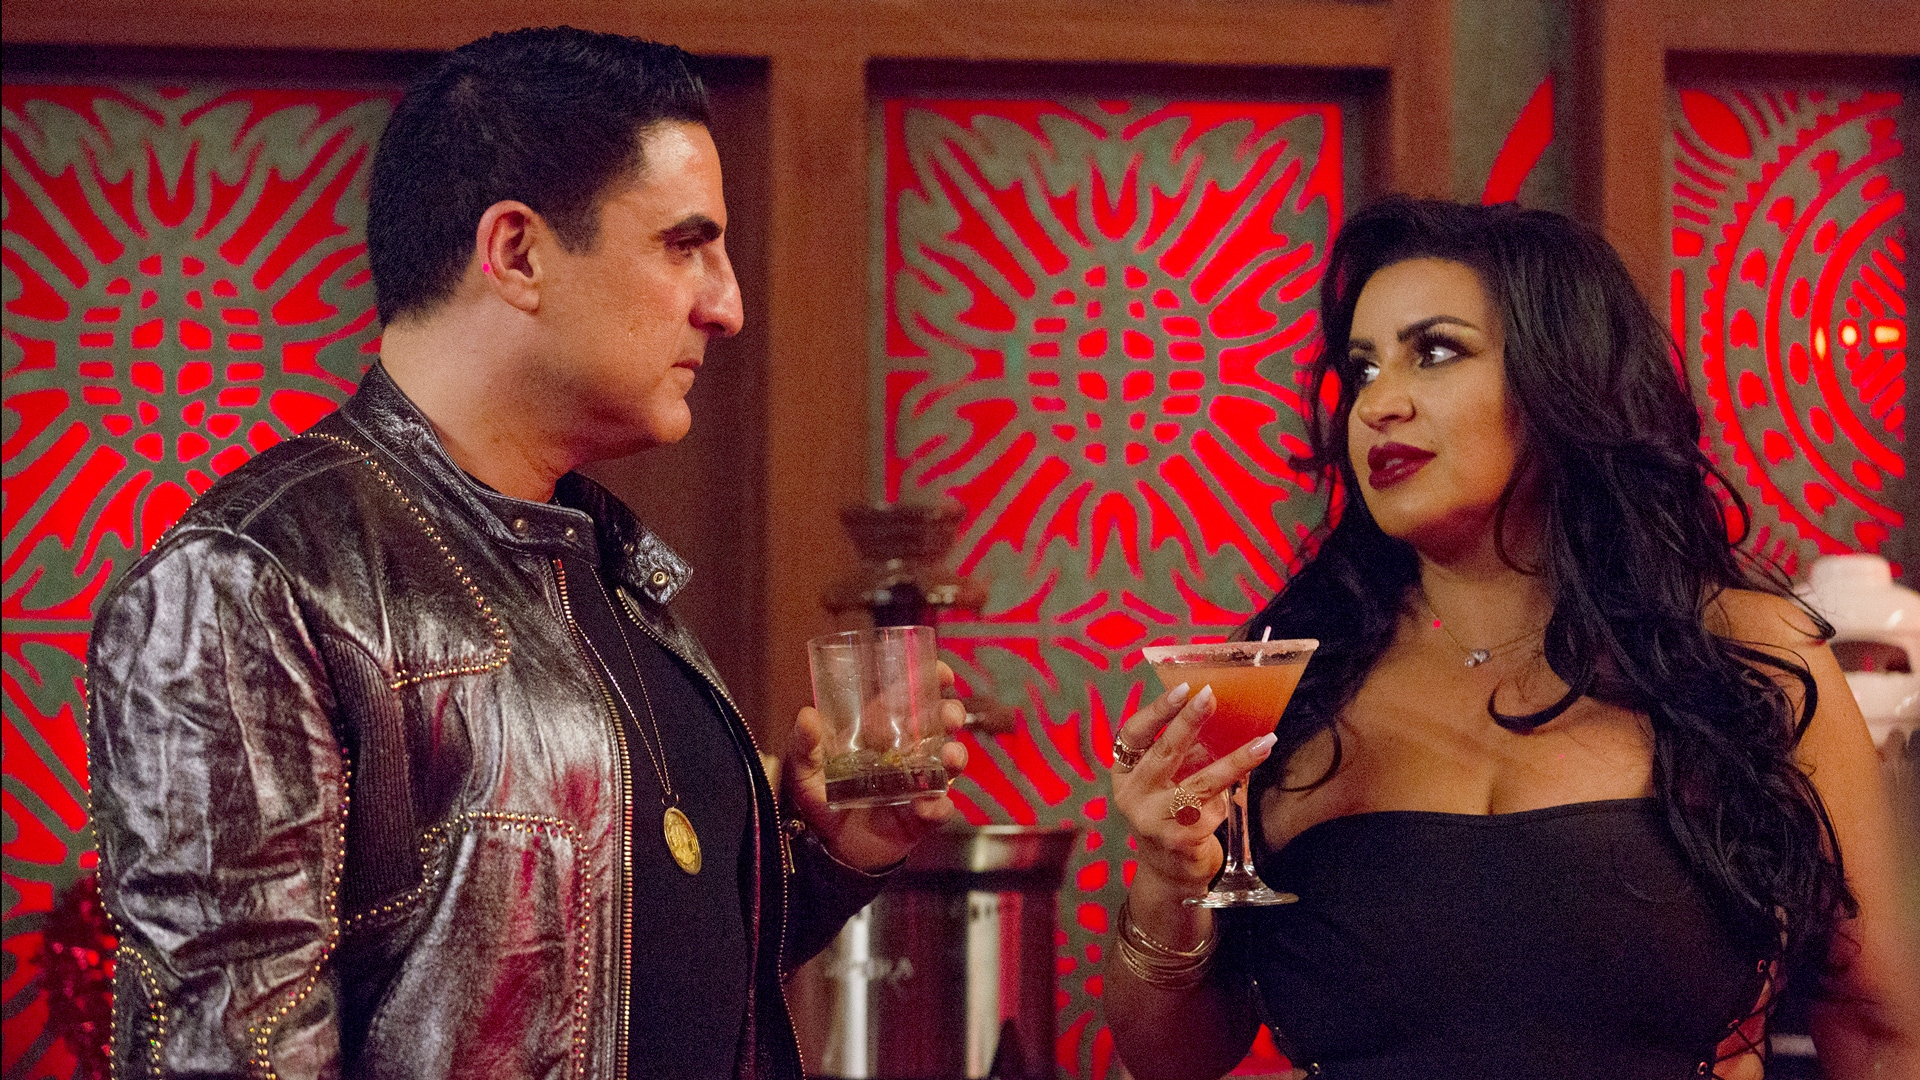 Watch Shahs of Sunset   Peacock